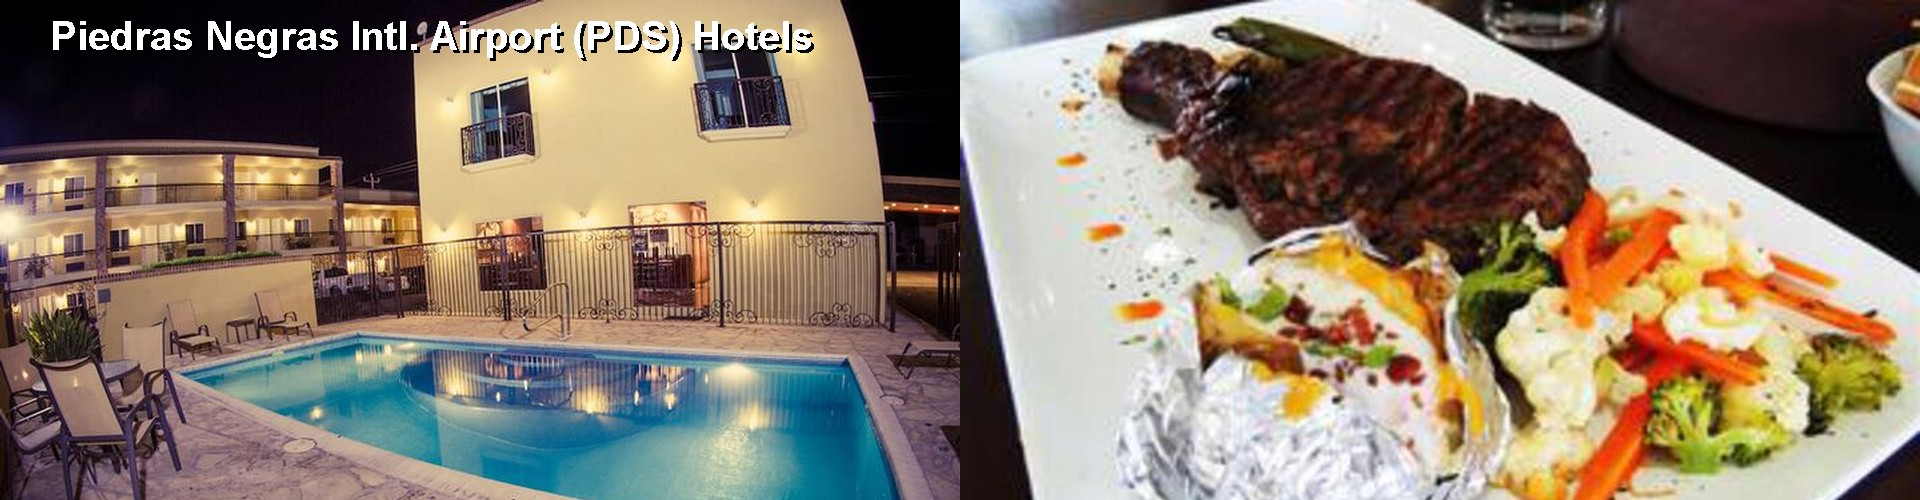 5 Best Hotels near Piedras Negras Intl. Airport (PDS)